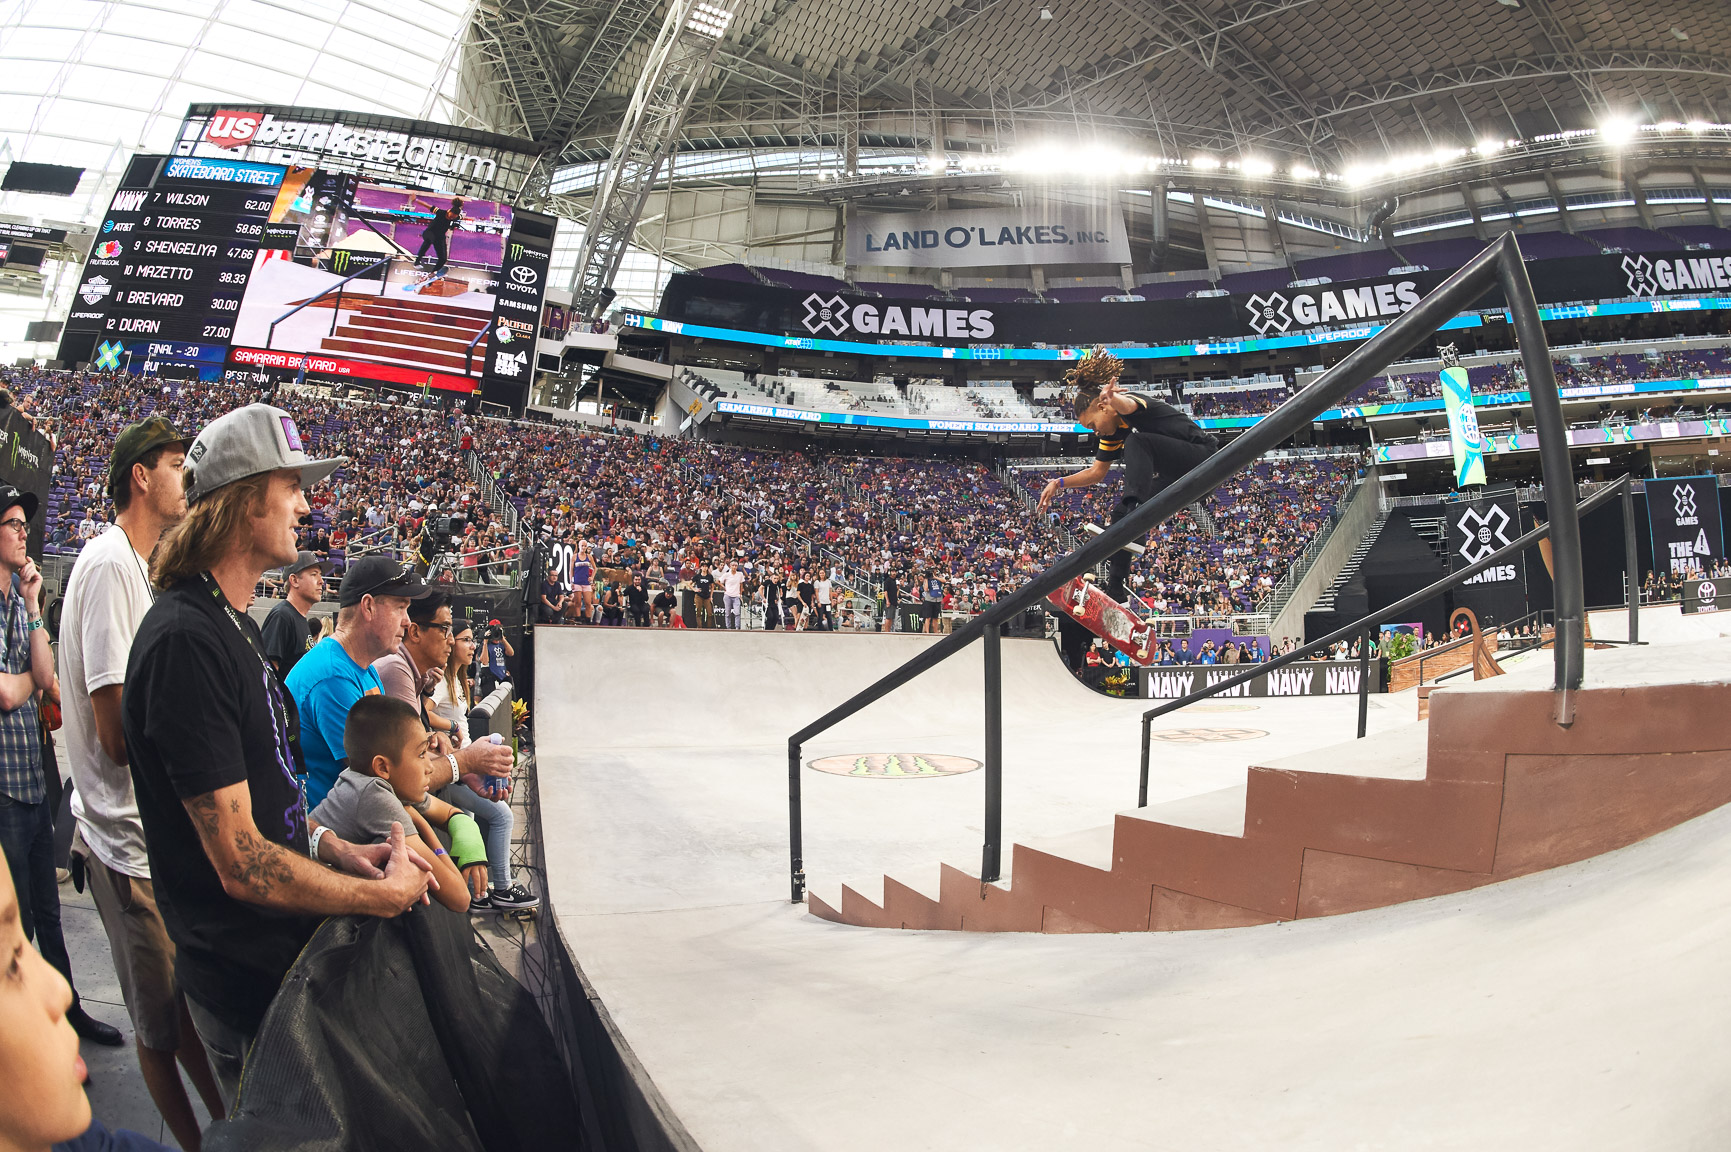 Samarria Brevard has been on fire this year. She tre flipped a 12-stair during the Ryan Sheckler Foundation event in May and was one of three girls on the 2017 King of the Road tour. In her four previous X Games appearances she finished just off the podium, but that changed on Friday at X Games Minneapolis 2017, when she put together a solid second run to come from behind and win the silver medal.